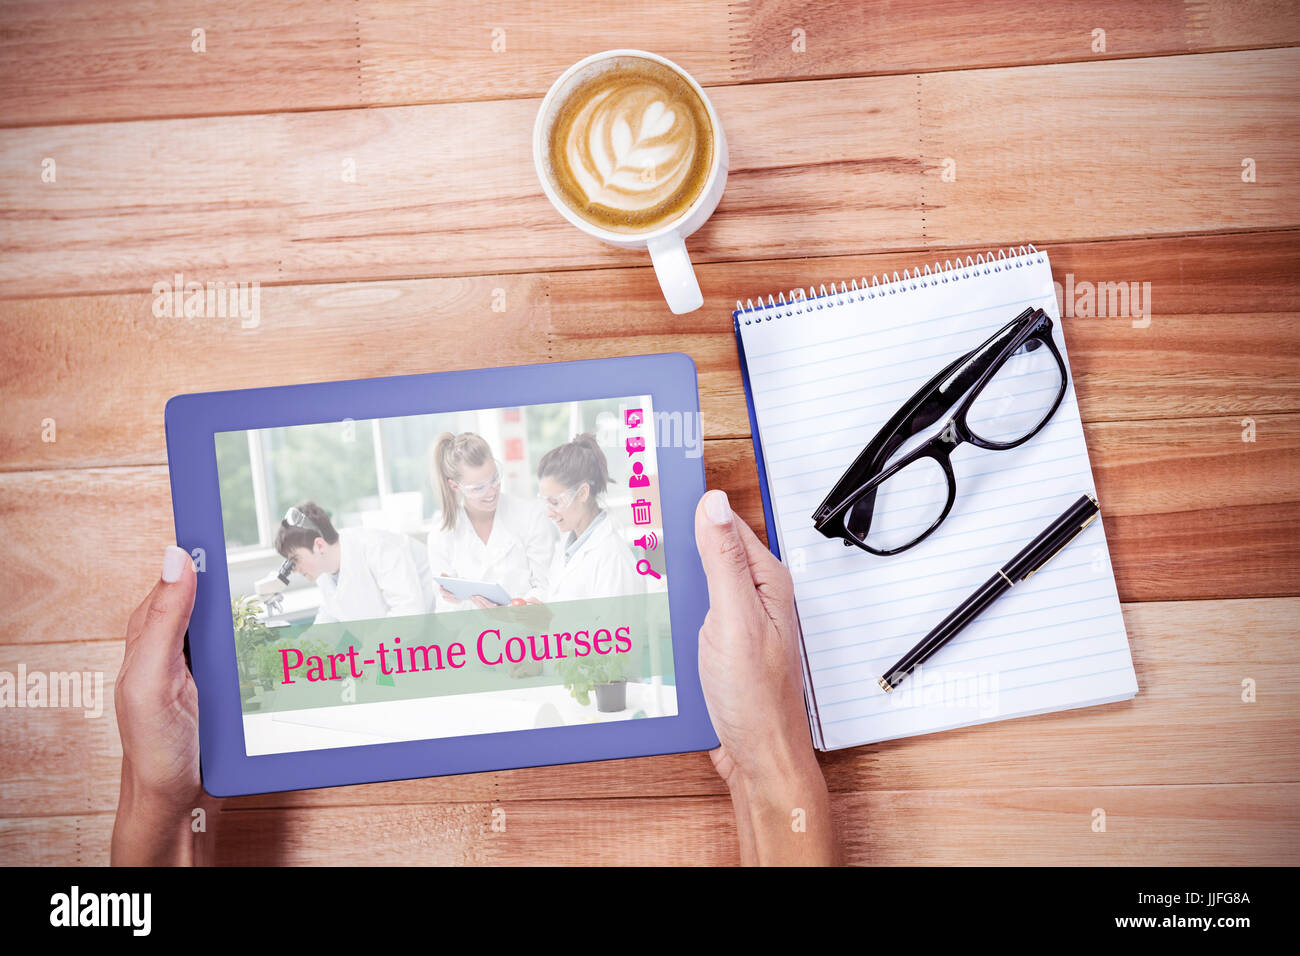 Composite image of part-time courses against overhead of feminine hands using tablet - Stock Image